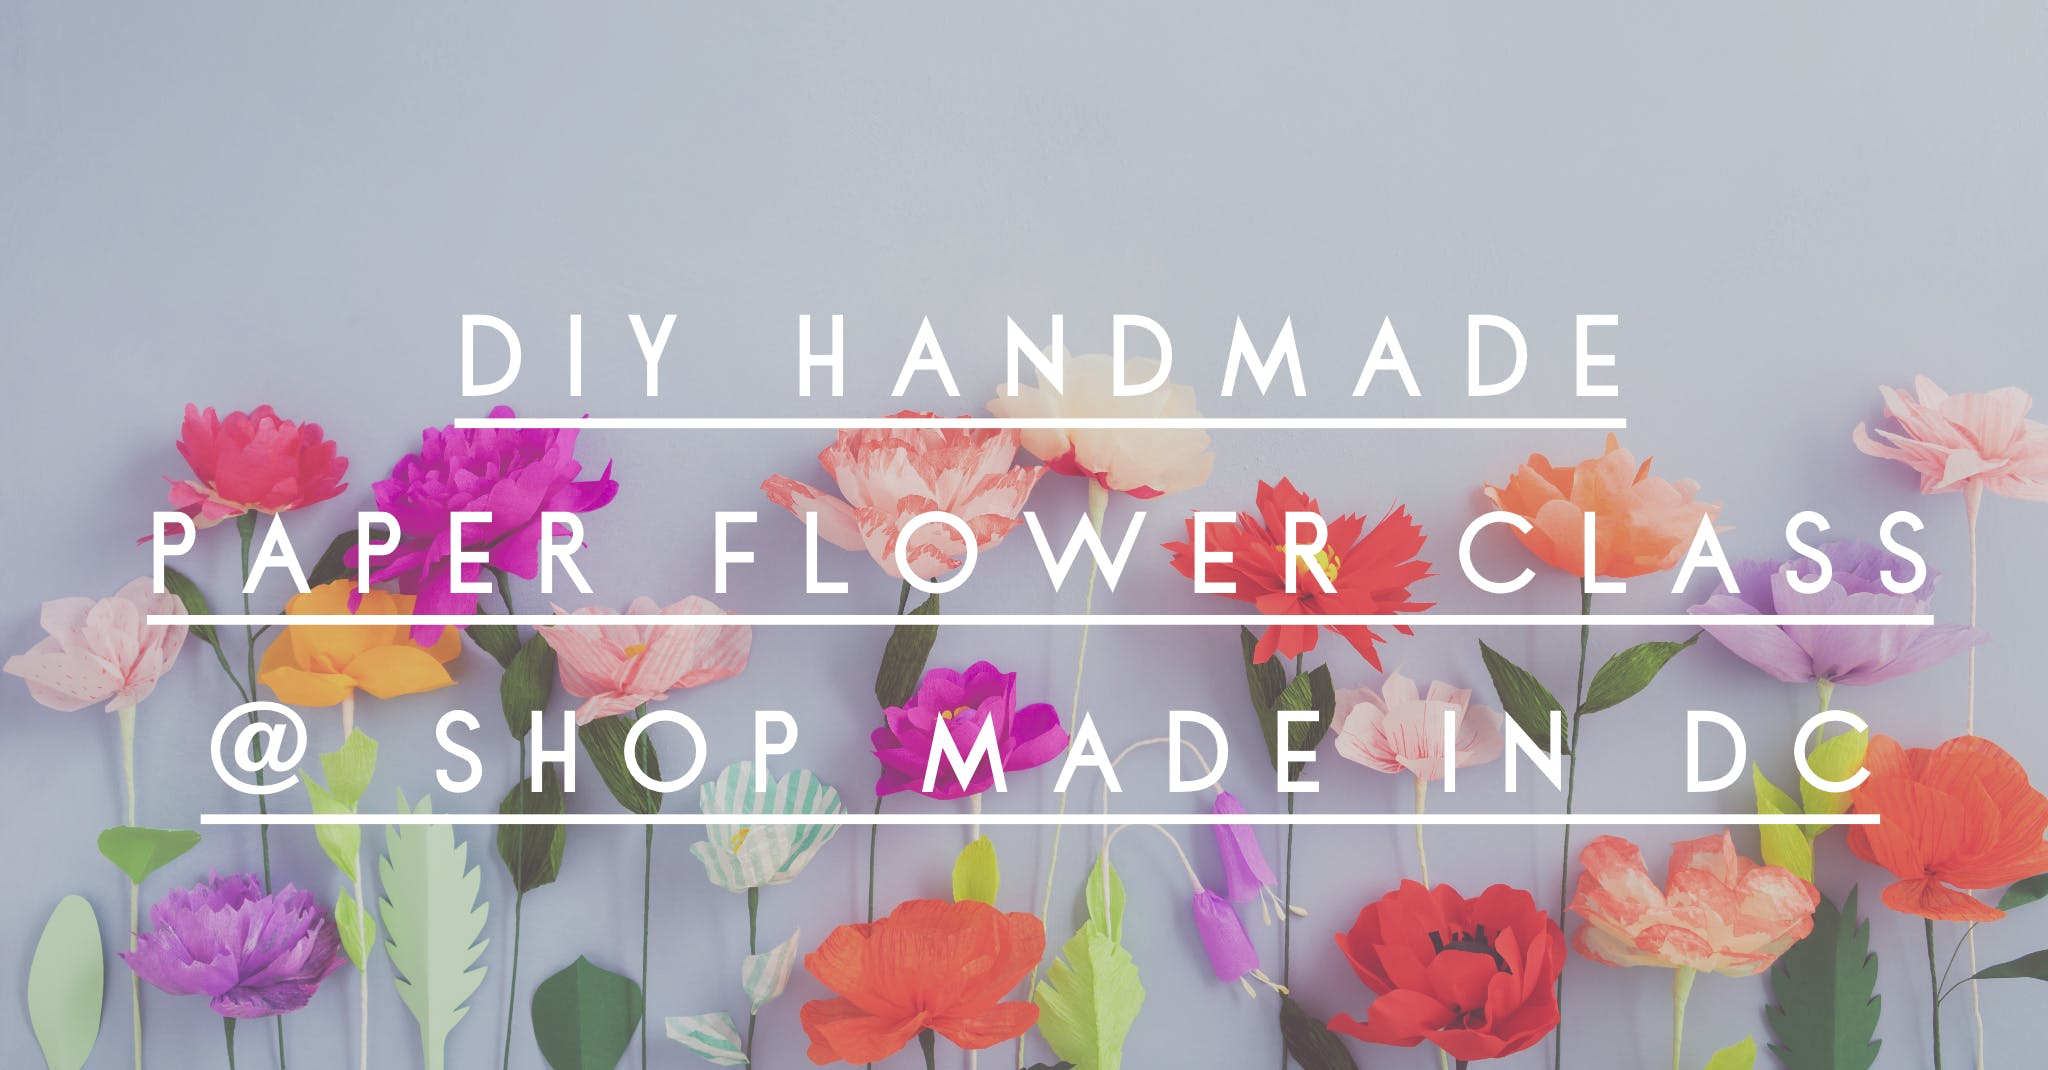 Diy Paper Flower Making With Alison Kirby At Shop Made In Dc Washington